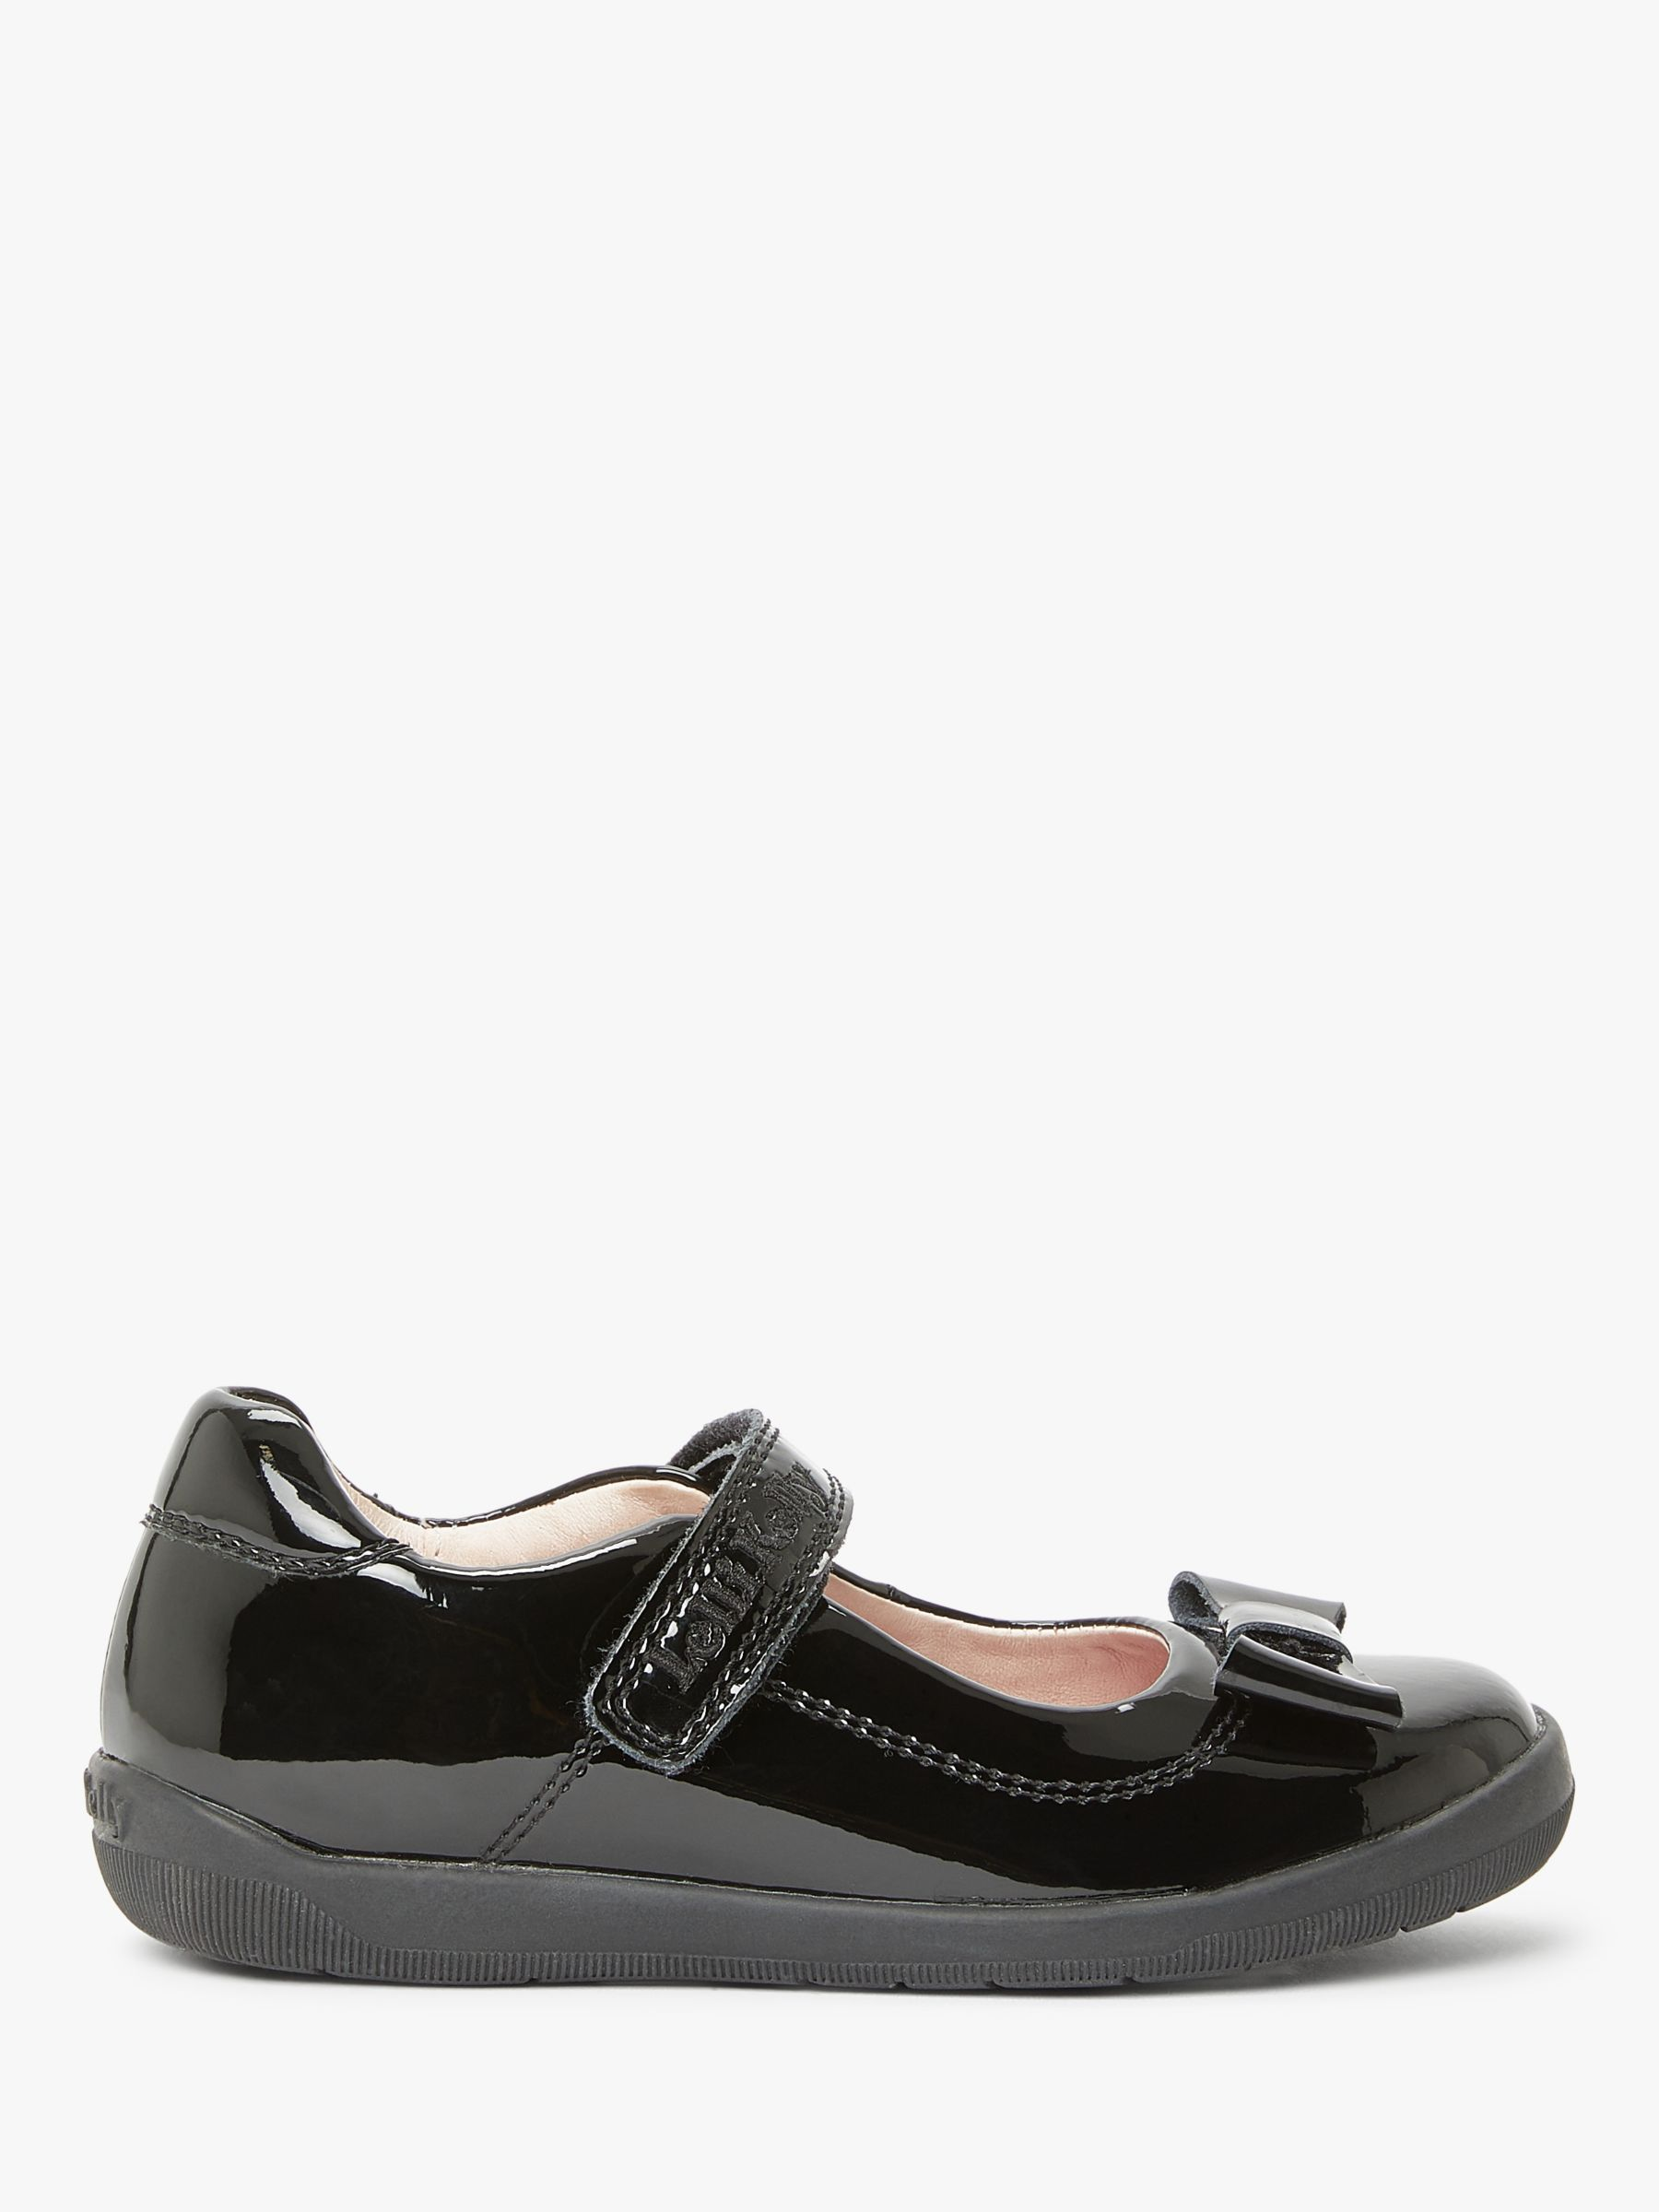 Lelli Kelly Lelli Kelly Children's Elsa Leather School Shoes, Black Patent